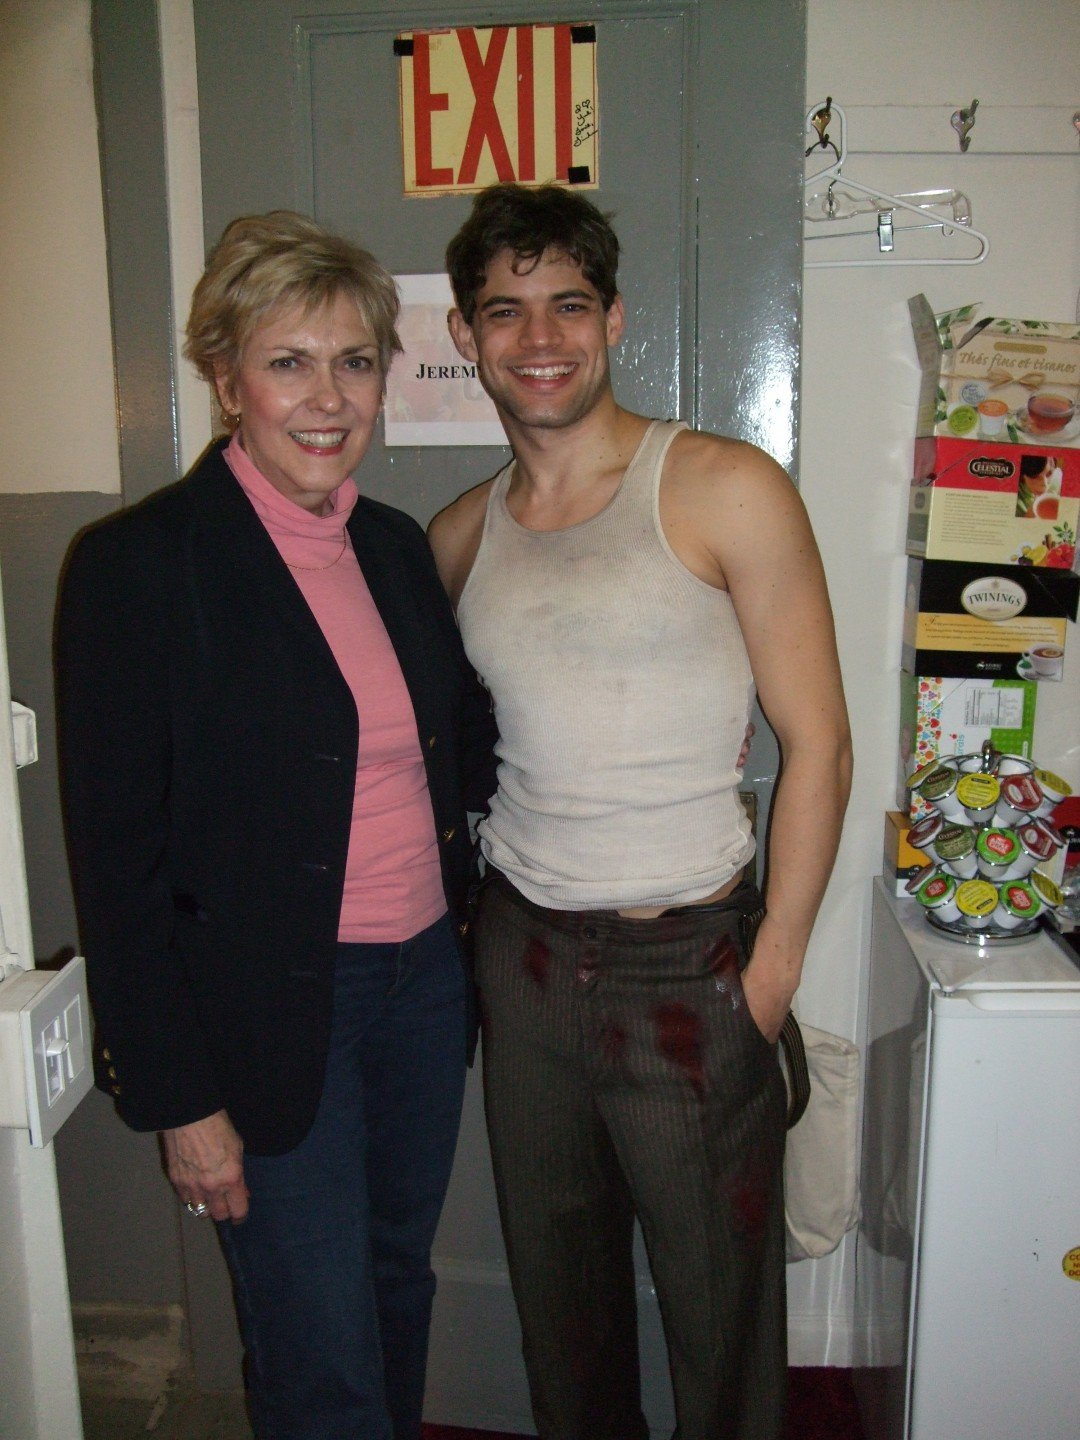 Backstage with Jeremy Jordan - Bonnie & Clyde